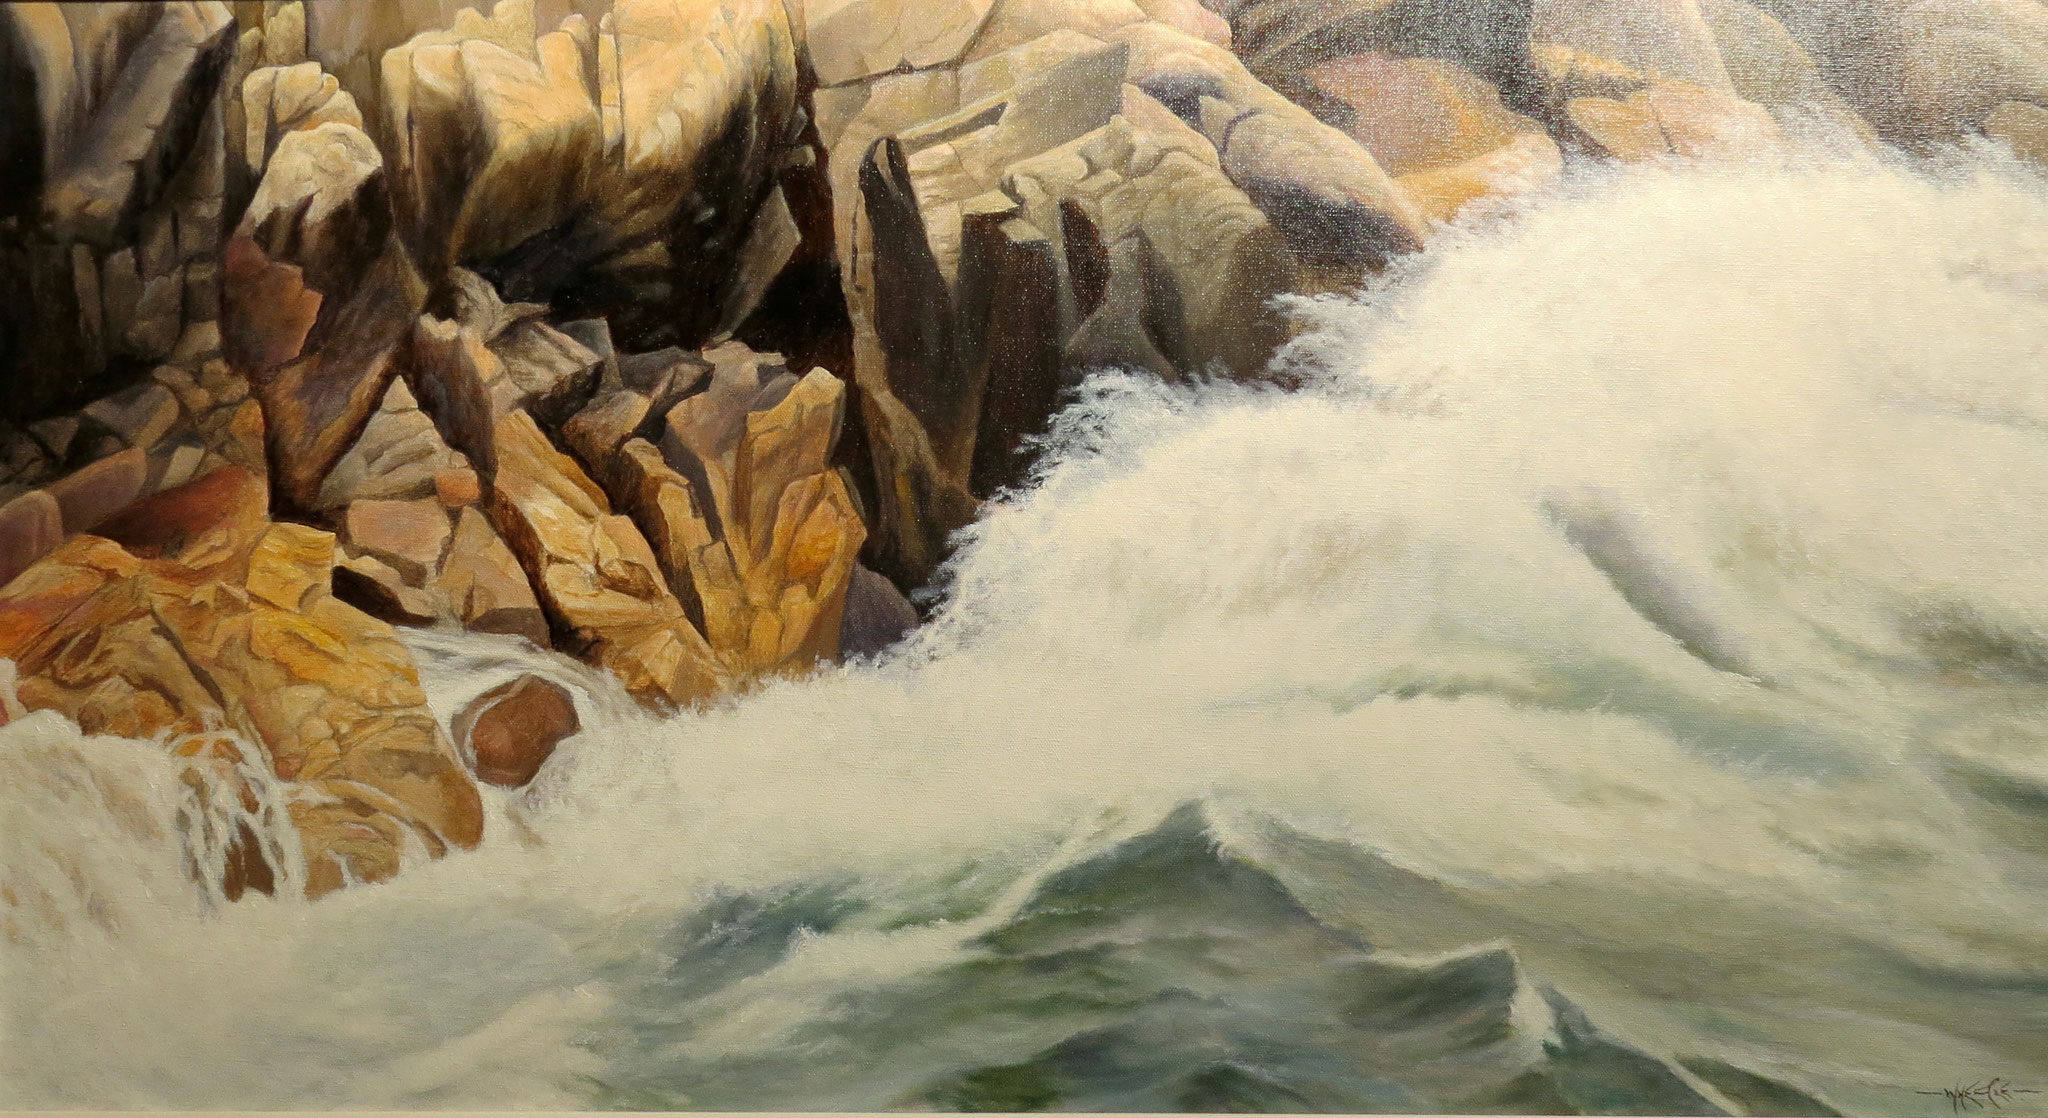 Waves, Lake Superior, Ivan Wheale oil on canvas 20 X 36